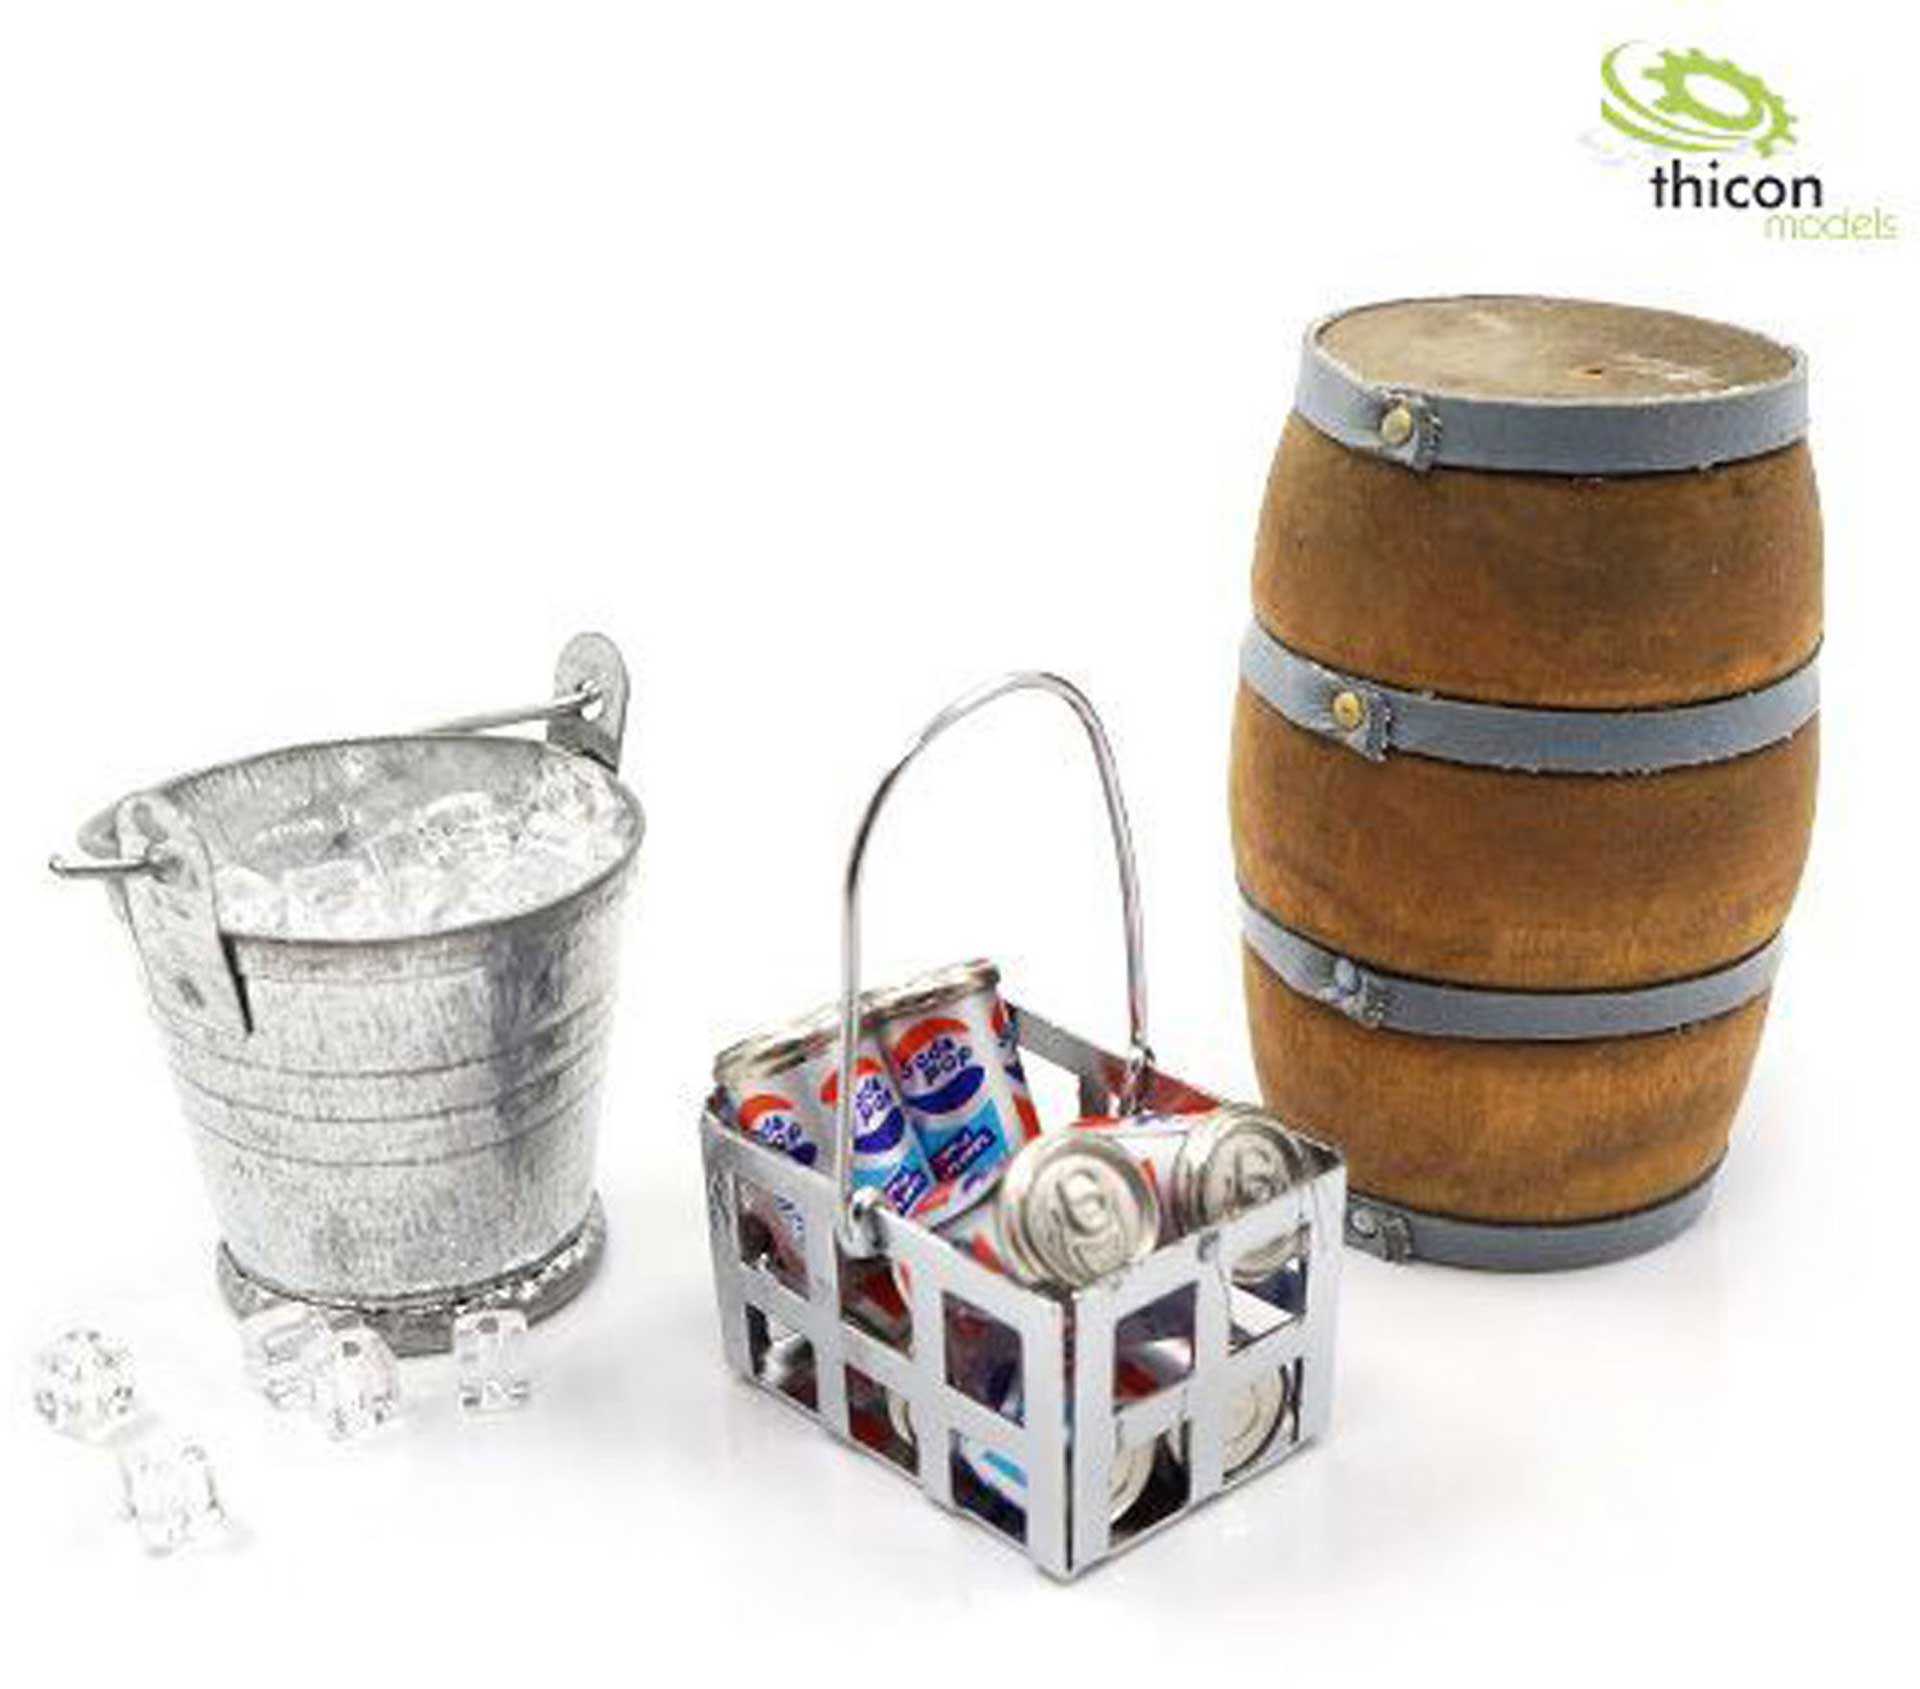 THICON-MODELS 1:10/1:14 CAMPING-SET 1 WITH WOOD FASS, BUCKET AND ICE CUBES